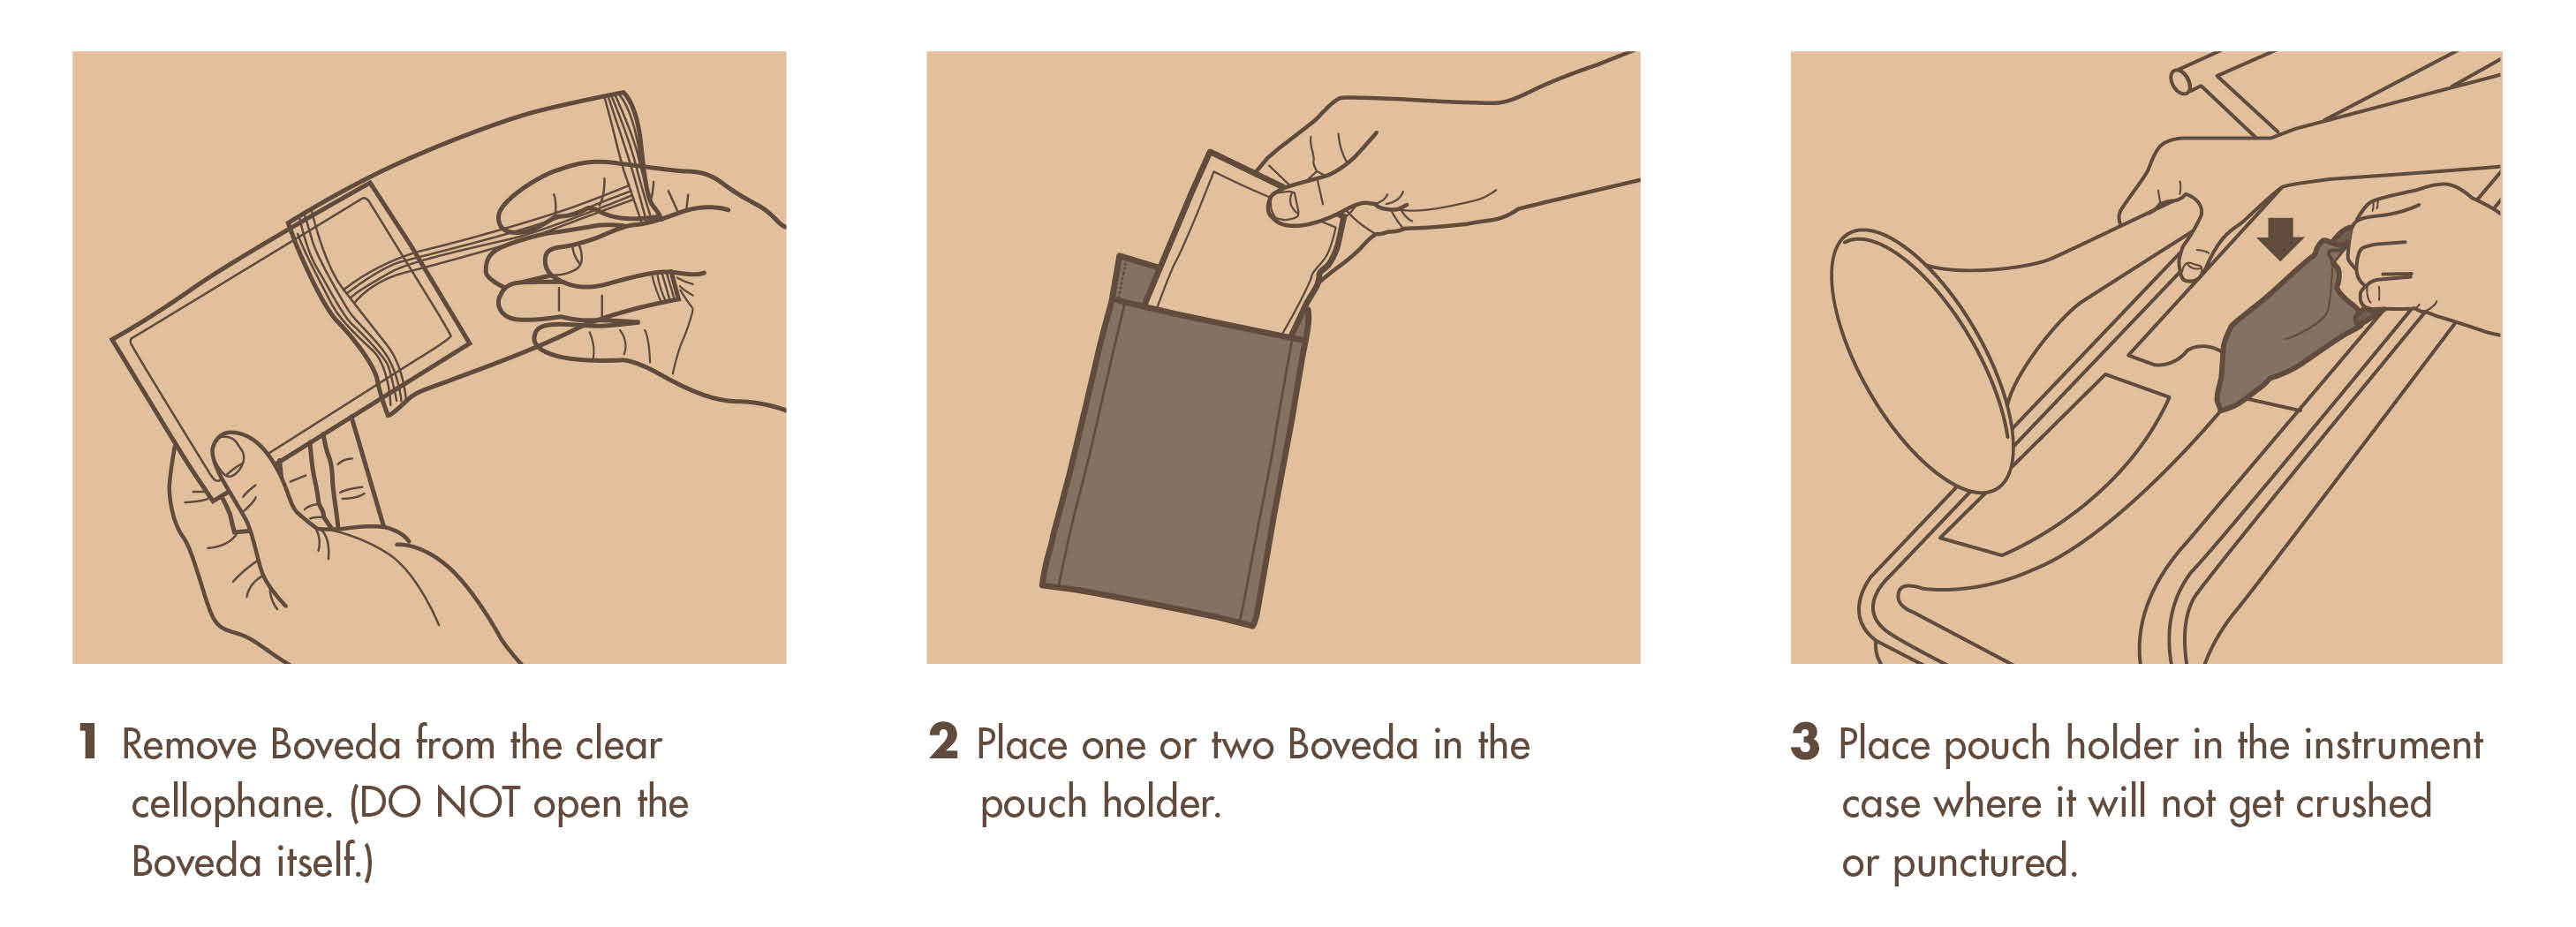 1. Remove Boveda from the clear cellophane. (DO NOT open the Boveda itself). 2. Place one or two Boveda in the pouch holder. 3. Place pouch holder in the instrument case where it will not get crushed or punctured.